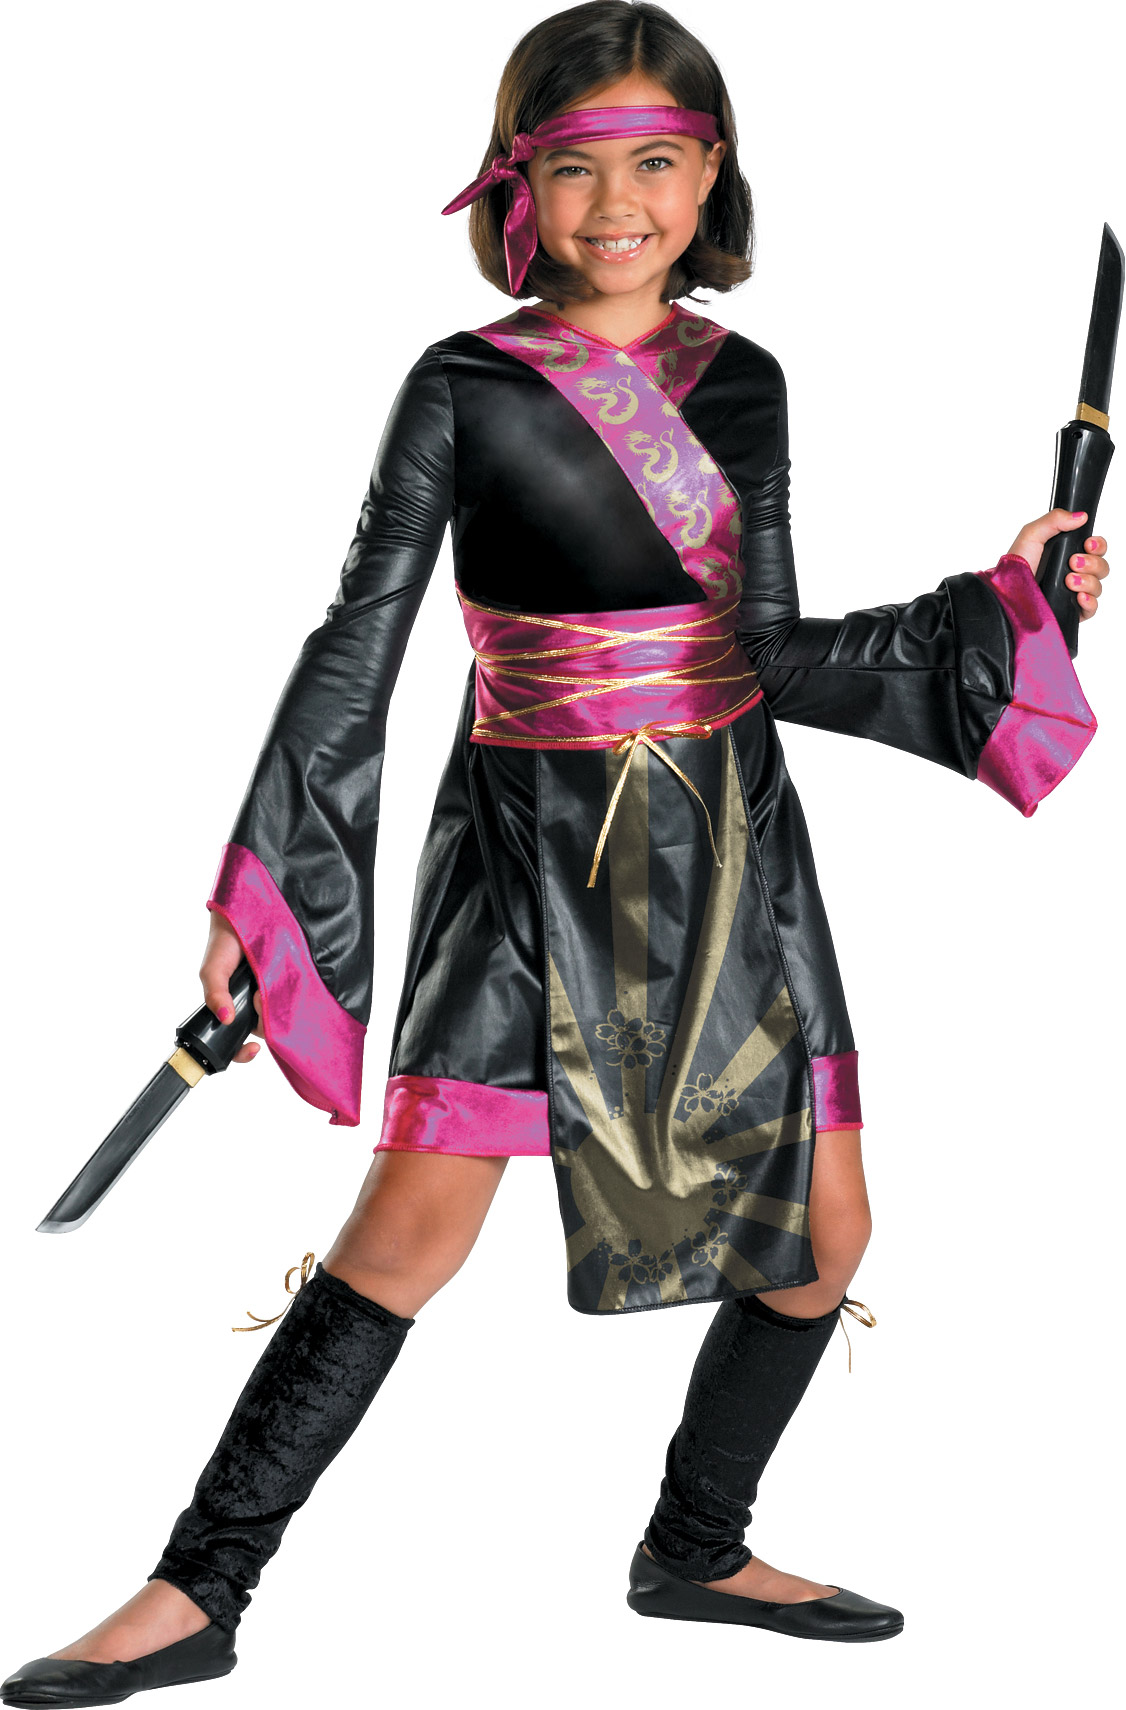 Disguise Adult Dragon Ninja Child Costume- Black/Pink: Small (4-6X)